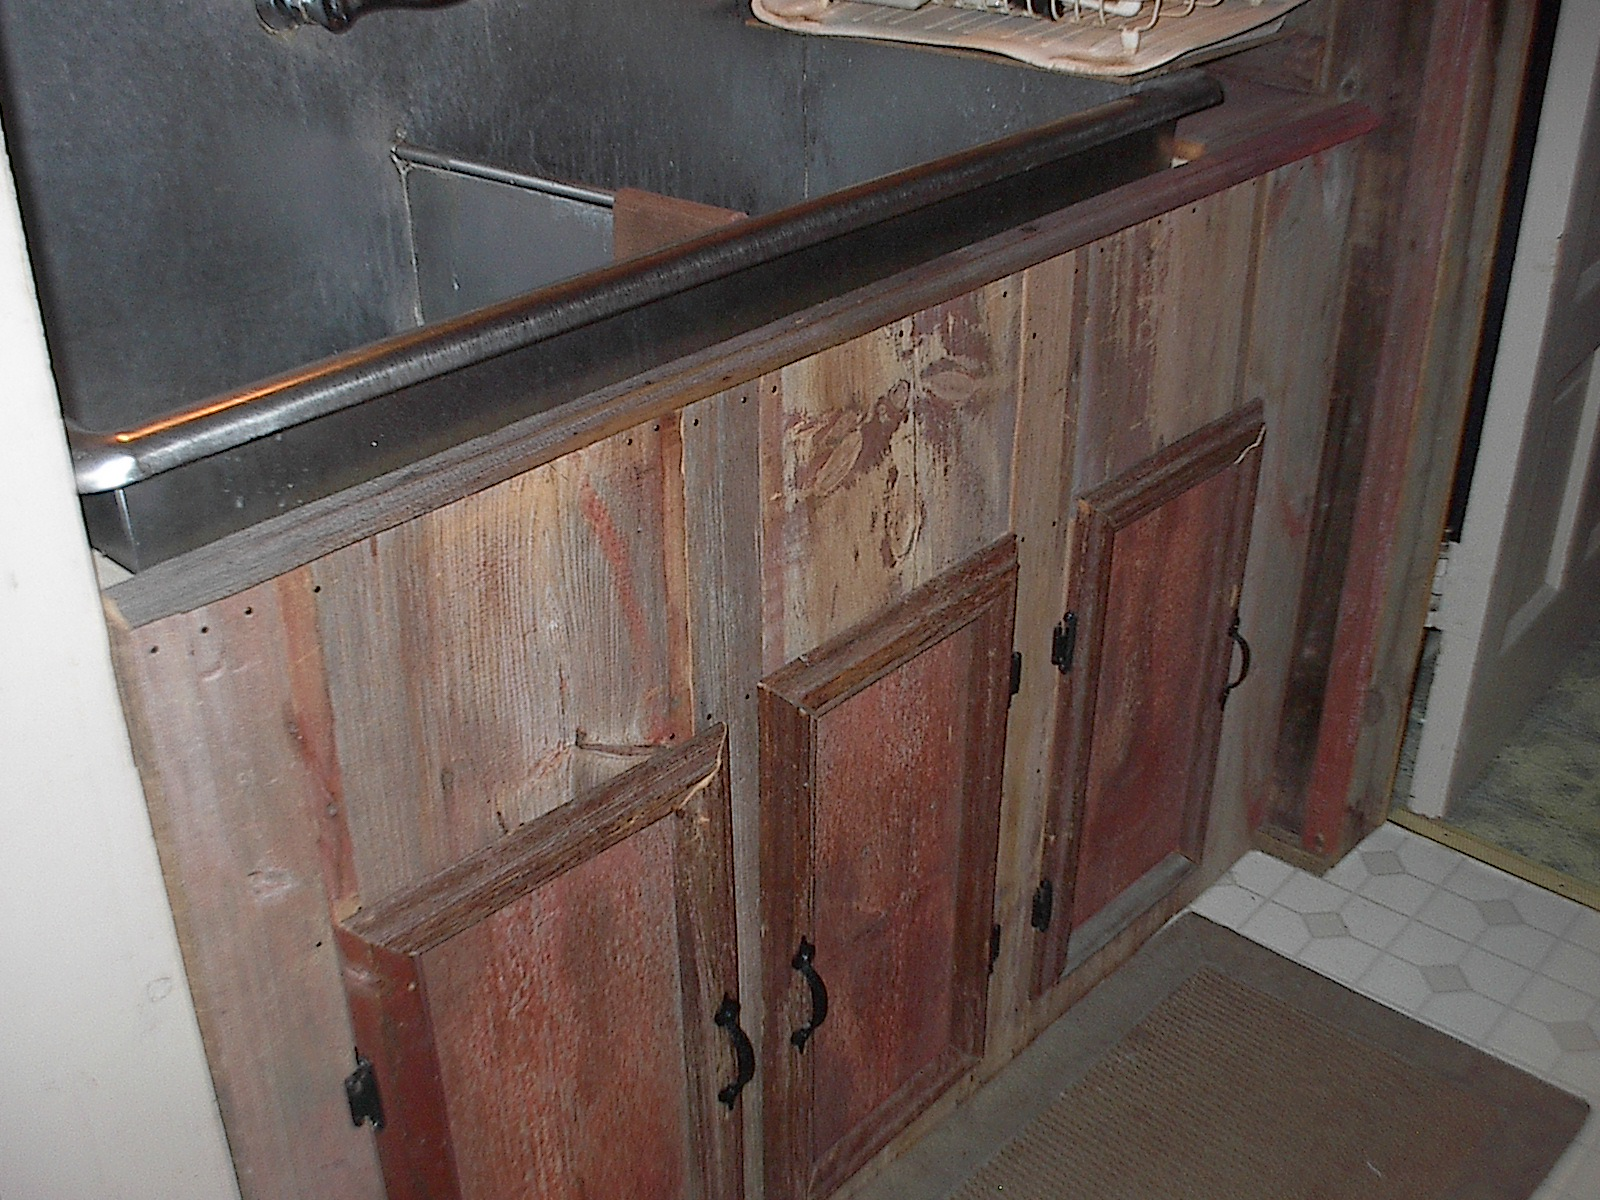 Barn Board Kitchen Cabinets Seasons Of Farm Grove A Glimpse Of My Cottage Lifestyle